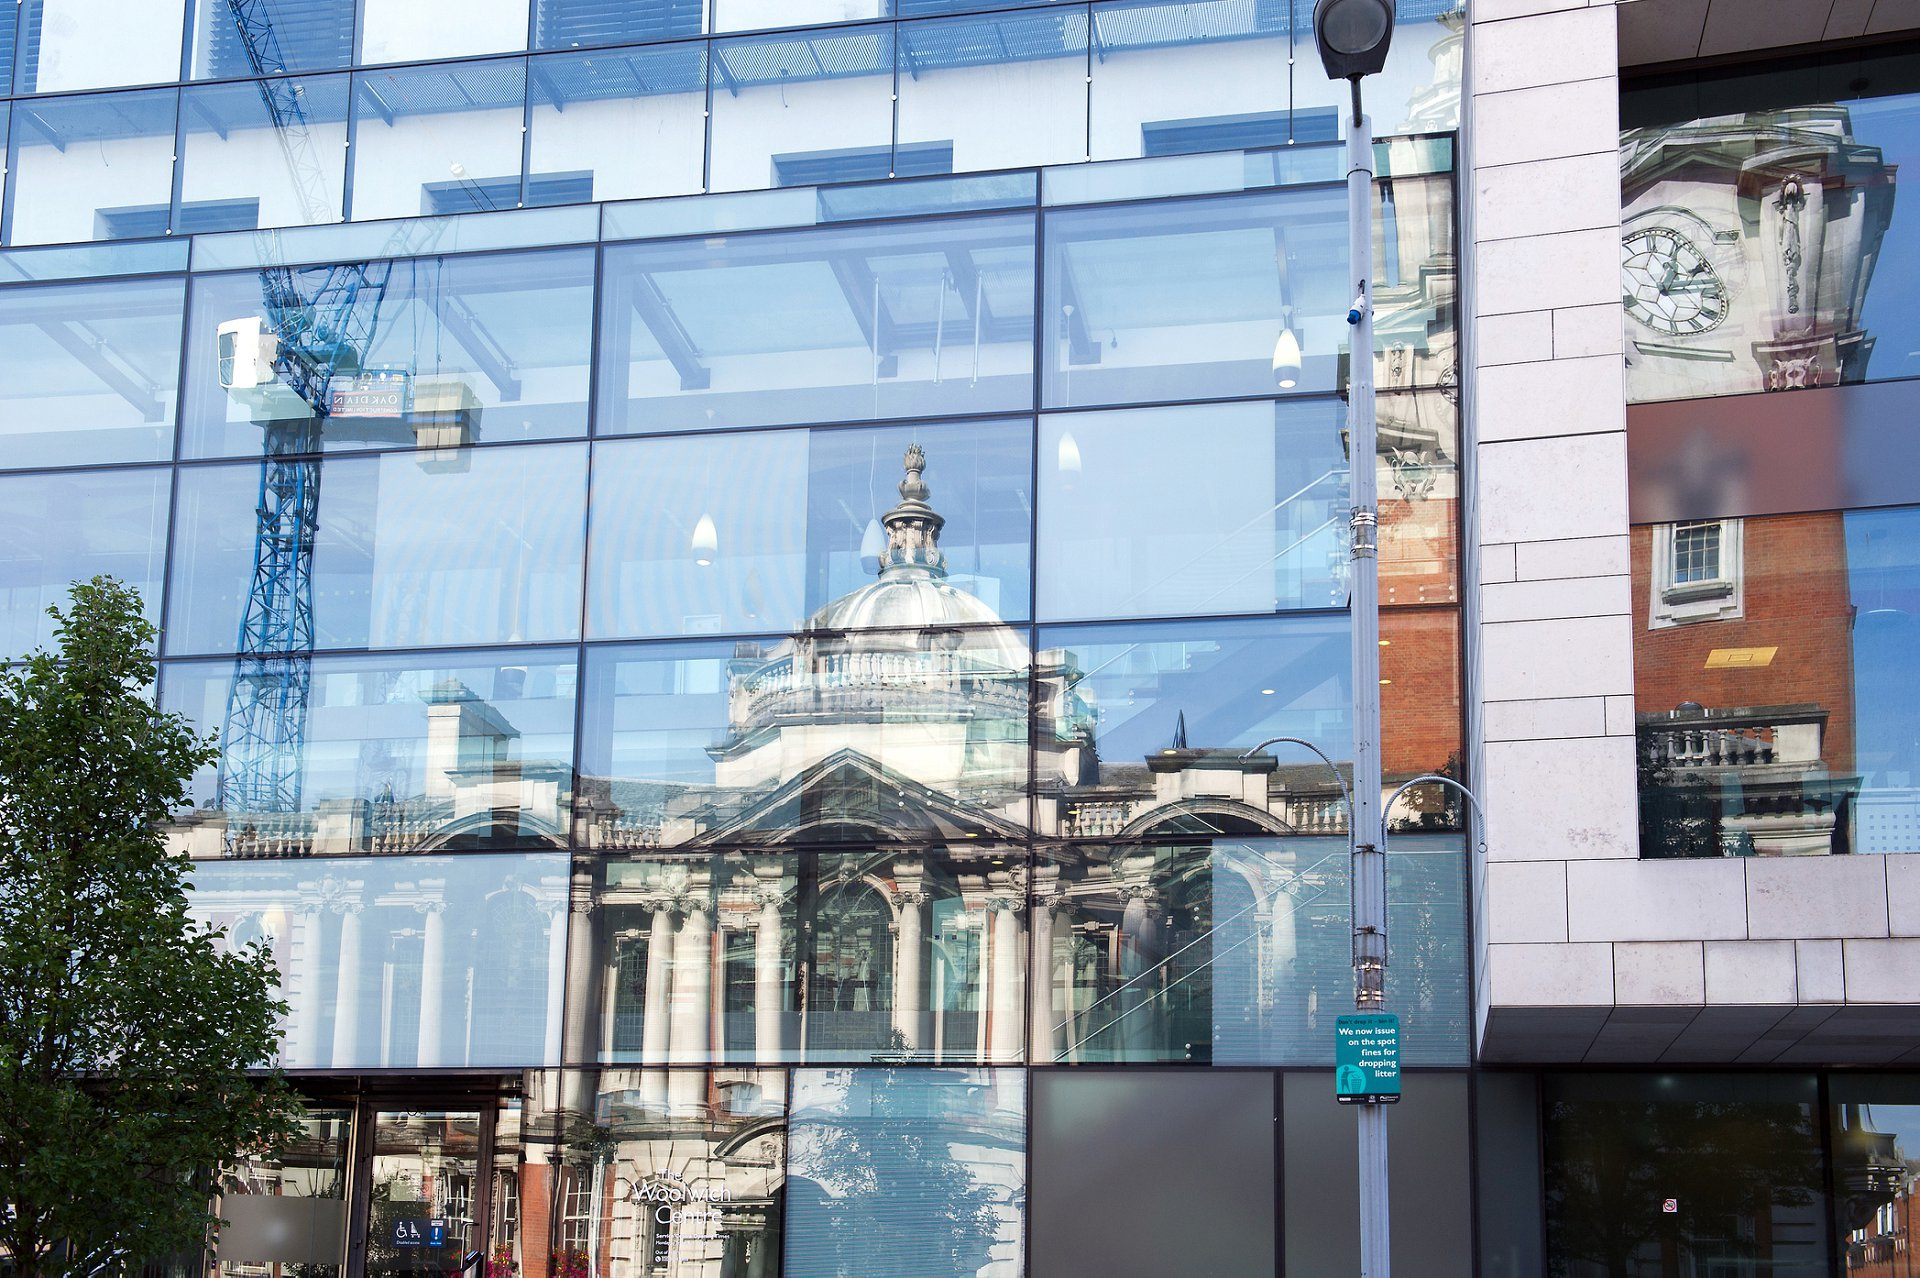 Exterior Greenwich Register Office is at Woolwich Town Hall and here is shown reflected in the windows opposite